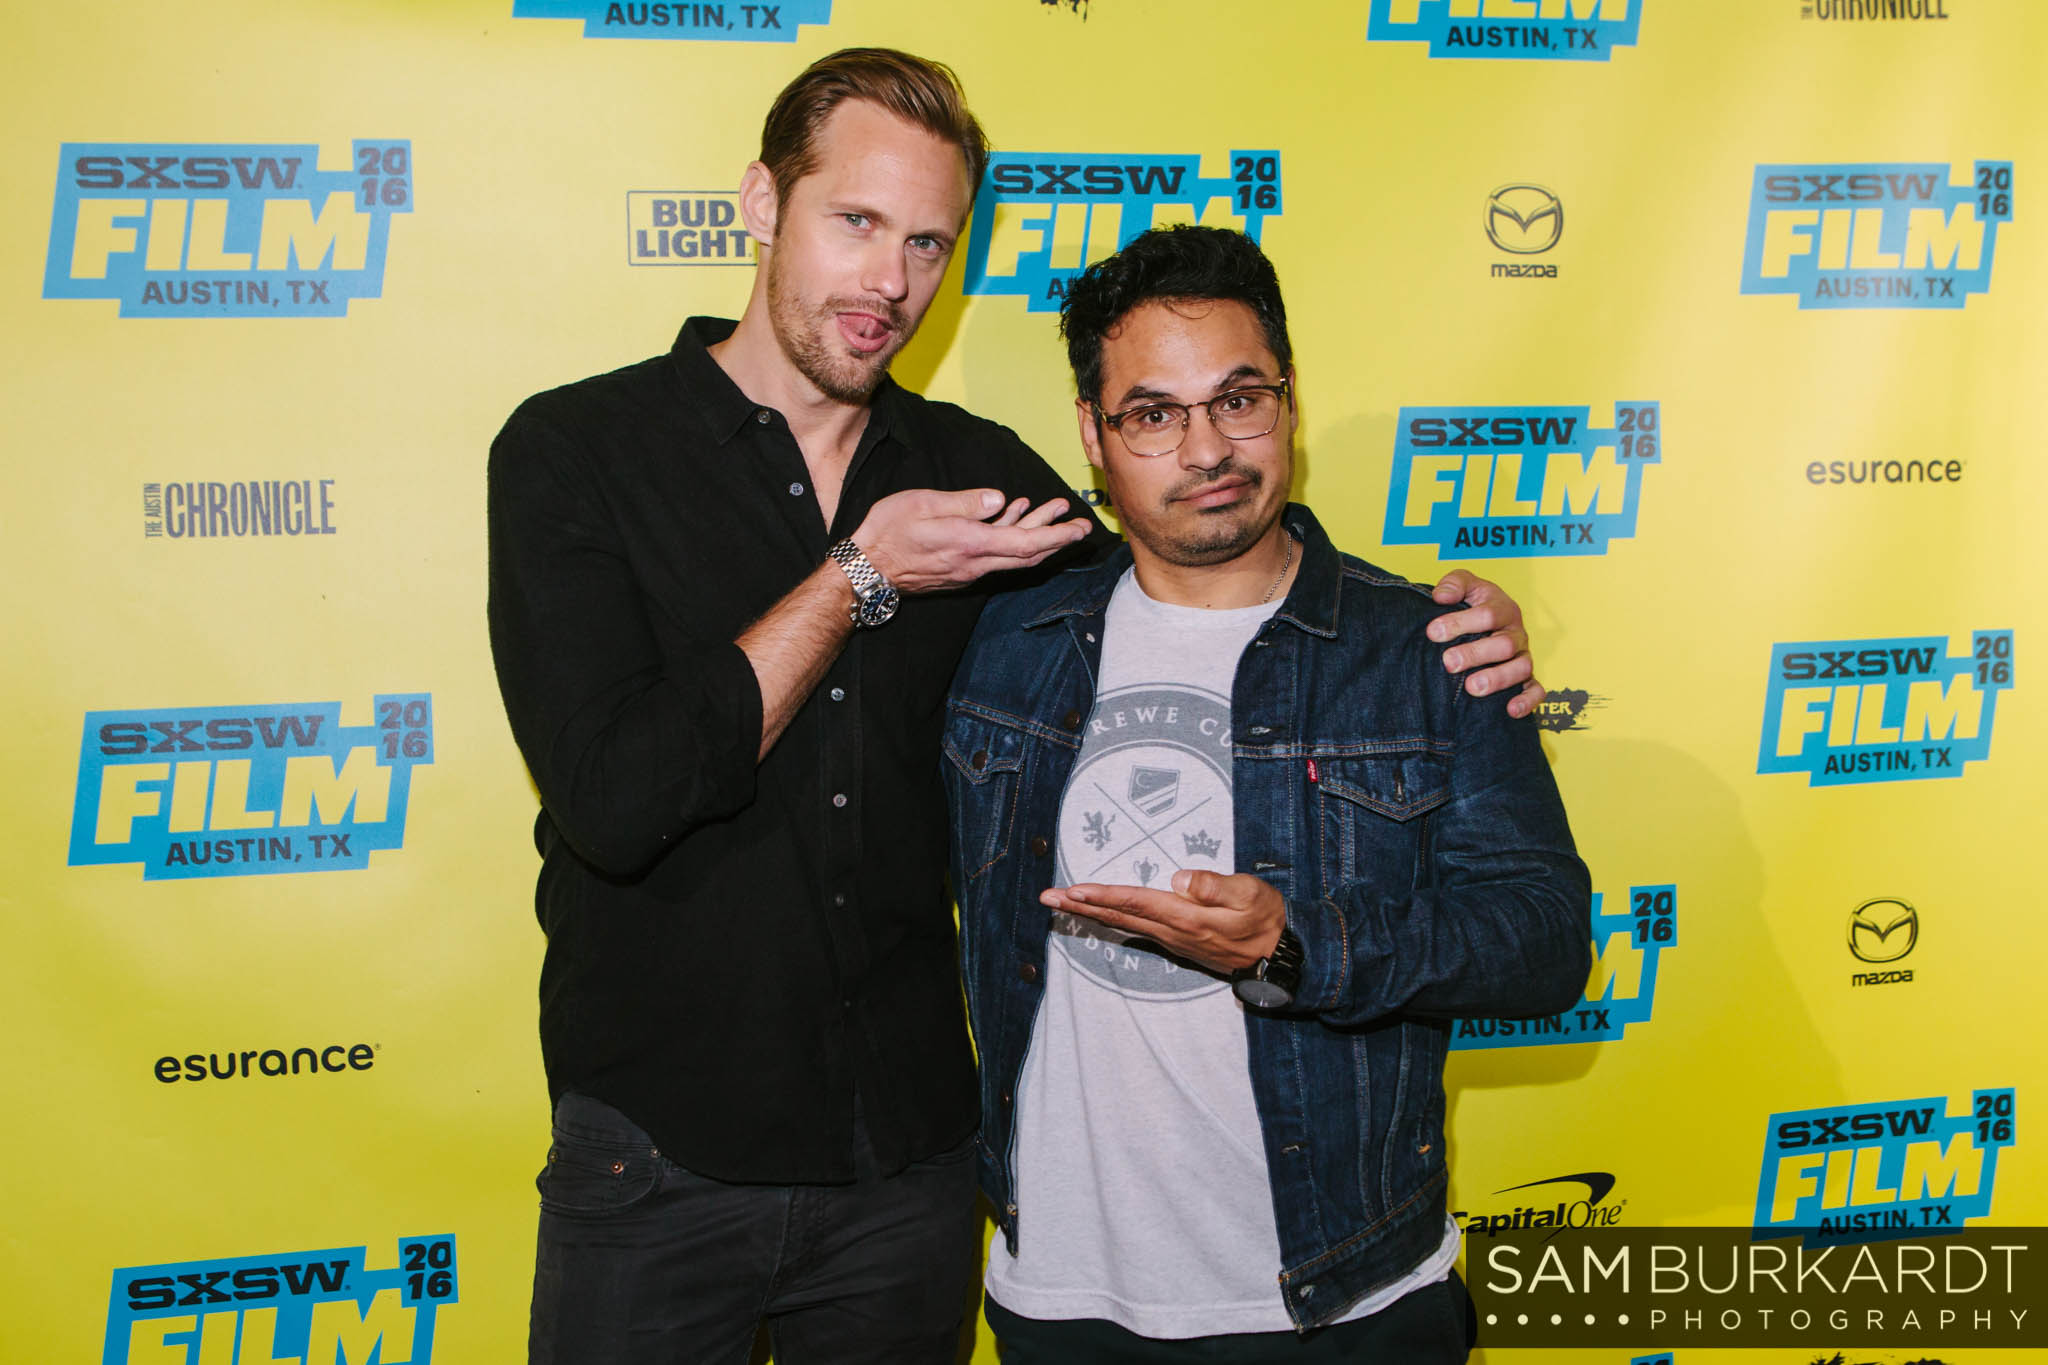 Alexander Skarsgard and Michael Pena at SXSW in Austin, Texas.